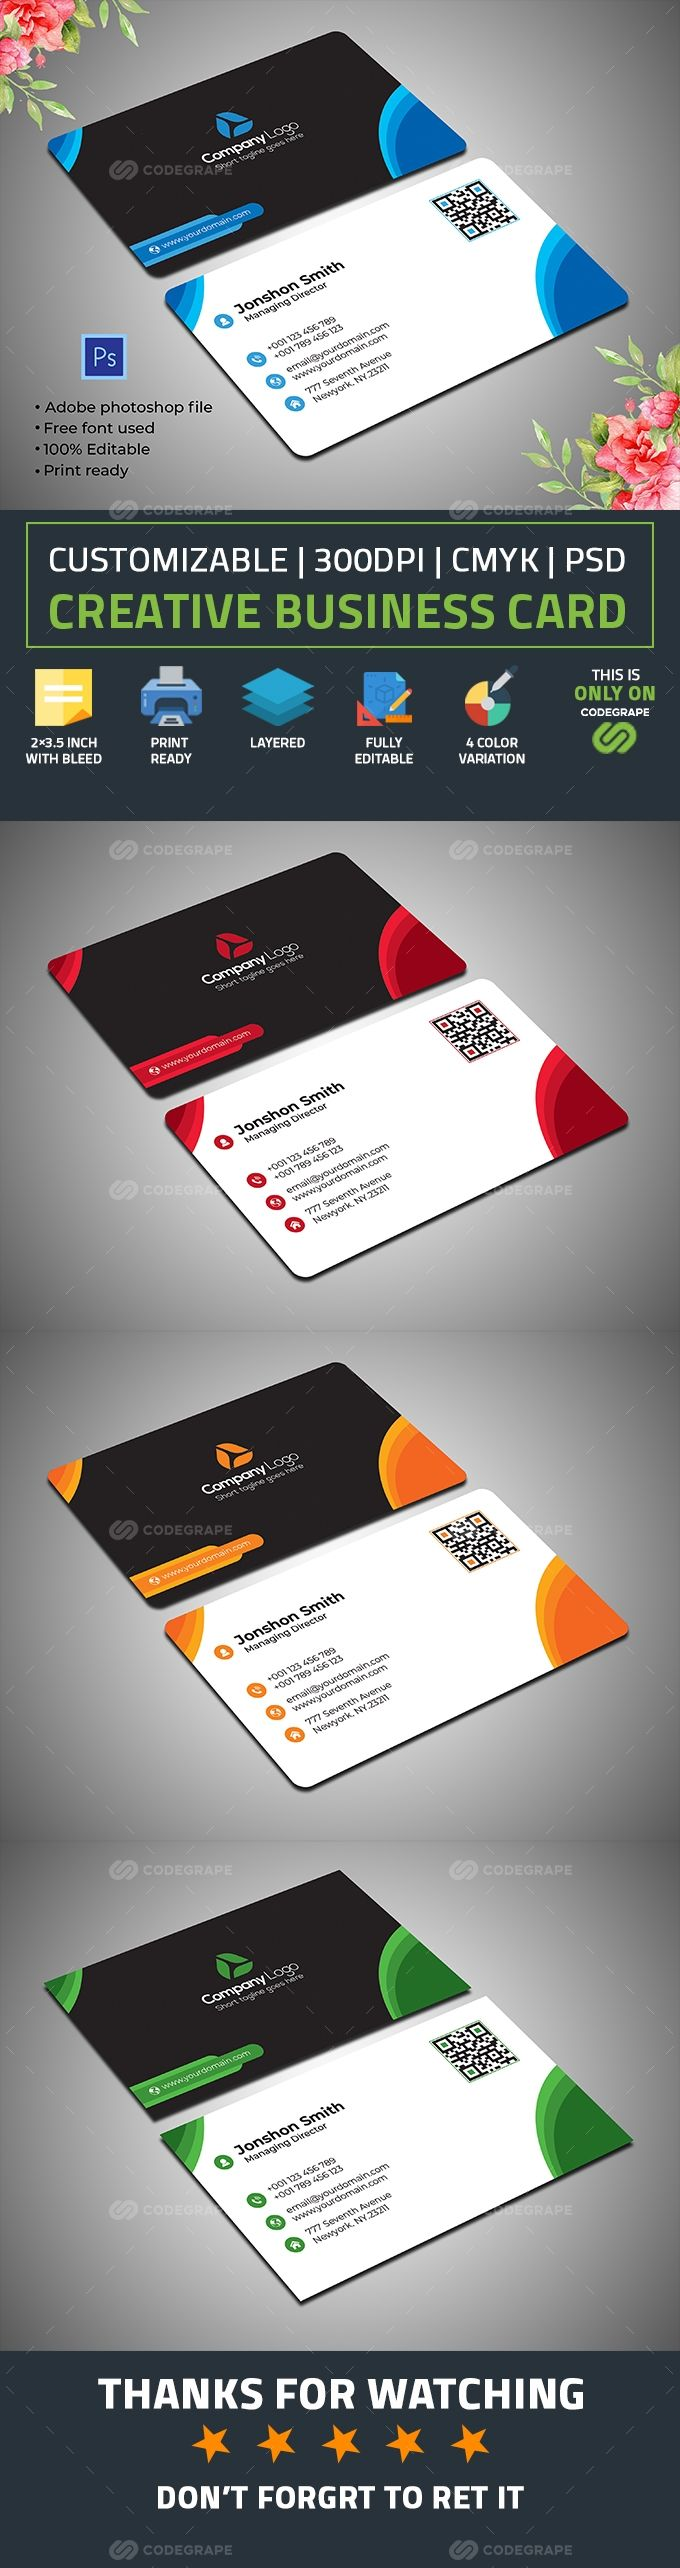 Simple Business Card In 2020 Simple Business Cards Corporate Business Card Business Card Psd